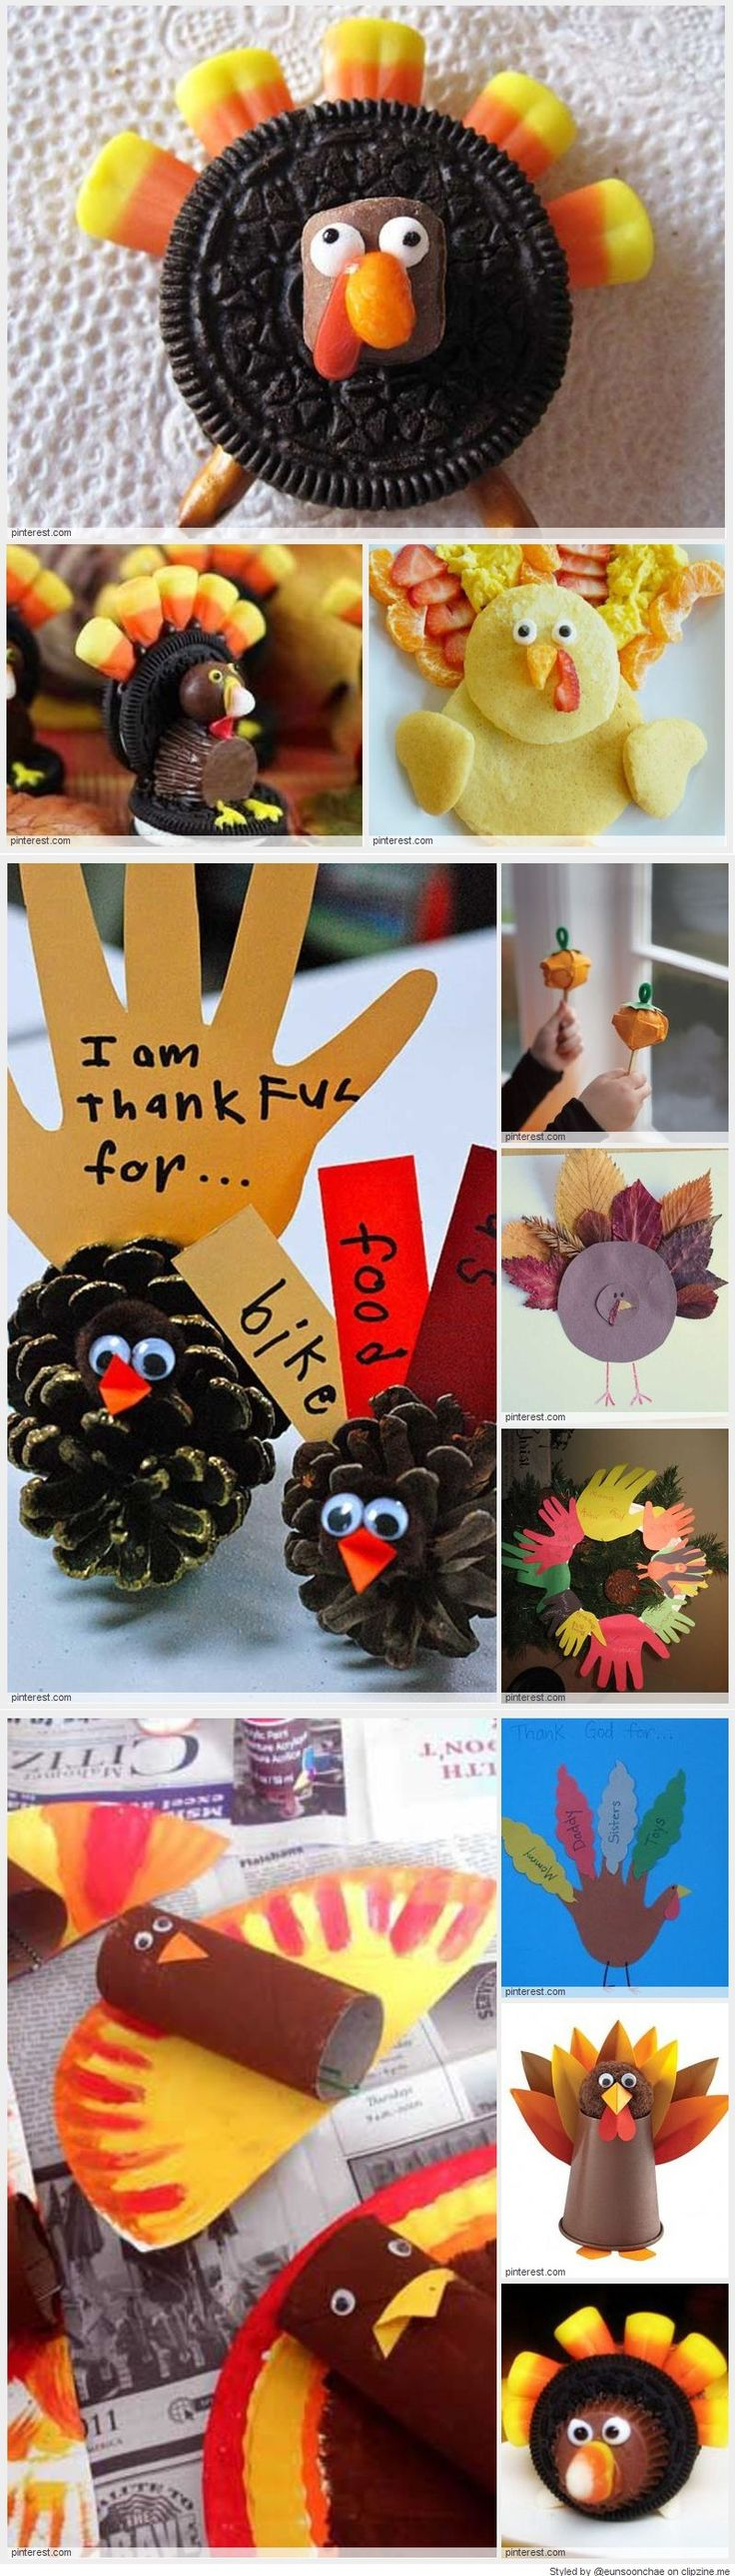 24 best images about church fall craft ideas etc on for Thanksgiving crafts for kids church